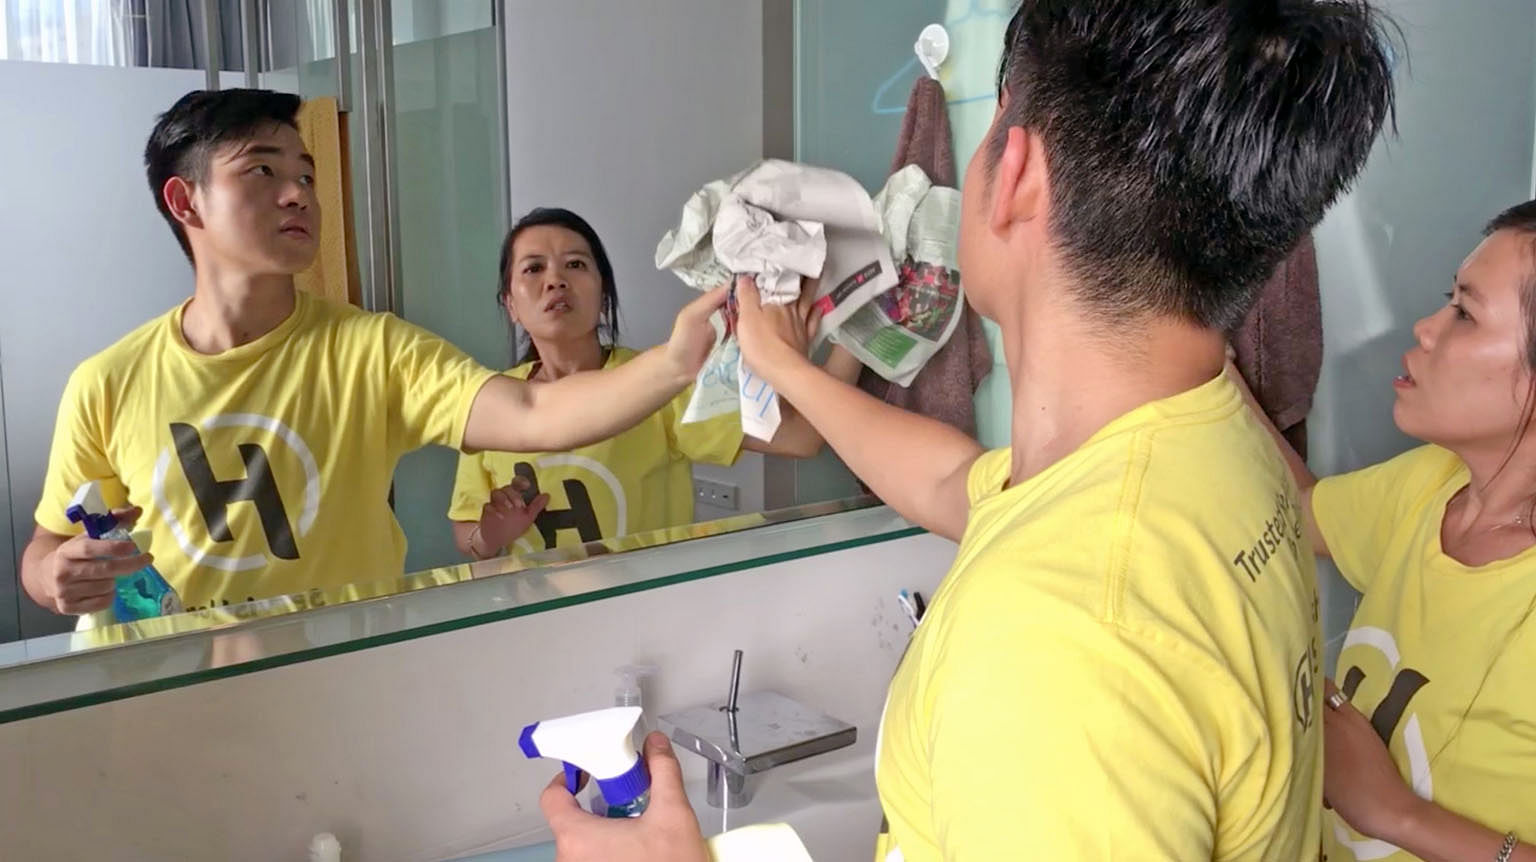 an Asian male and female in a public bathroom cleaning a mirror